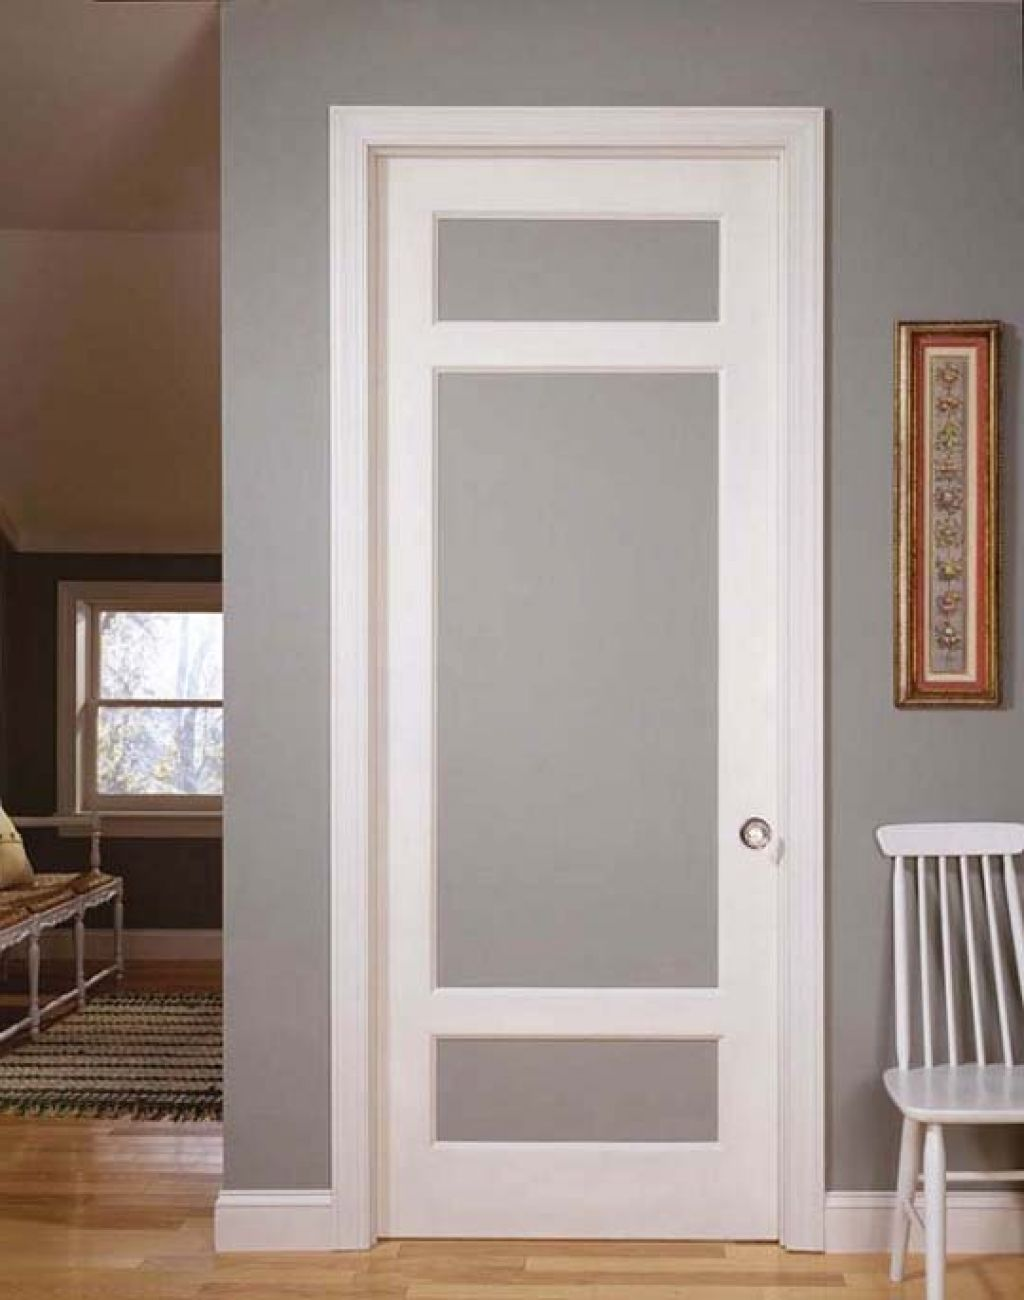 How to diy interior frosted glass doors